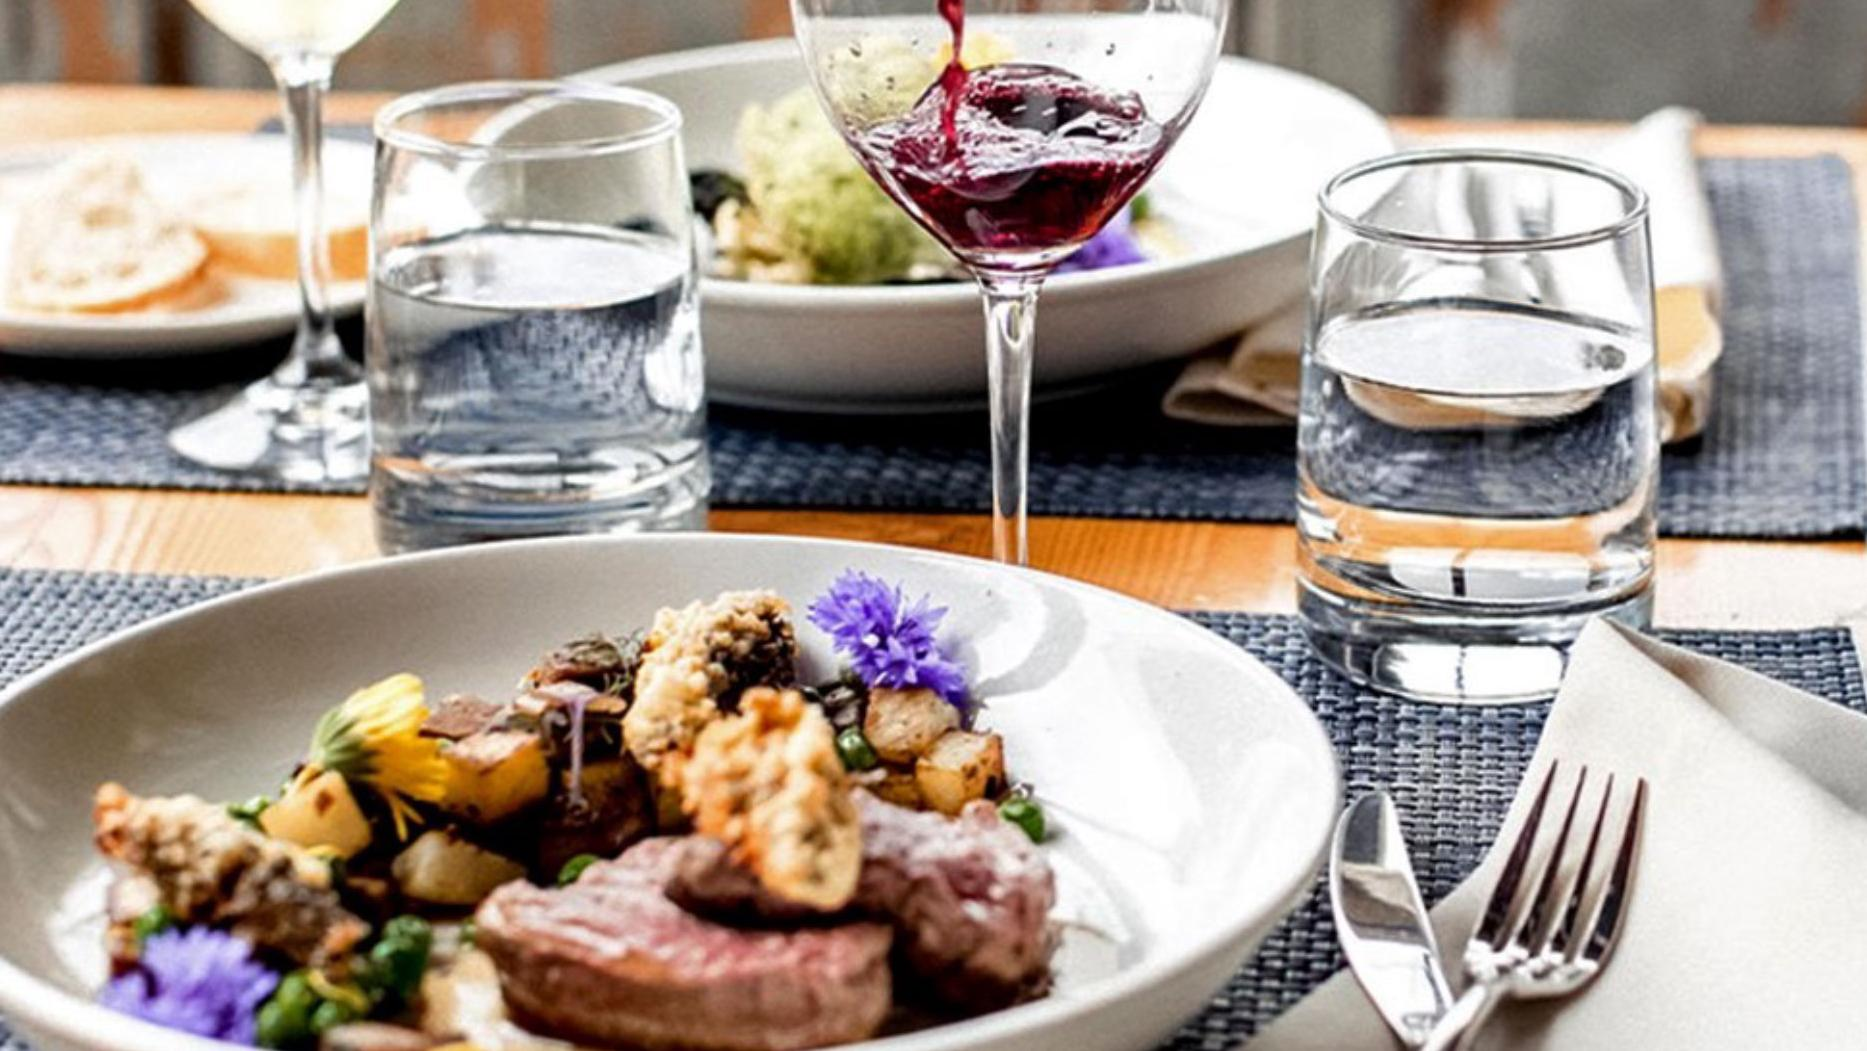 A plate of food and wine glasses